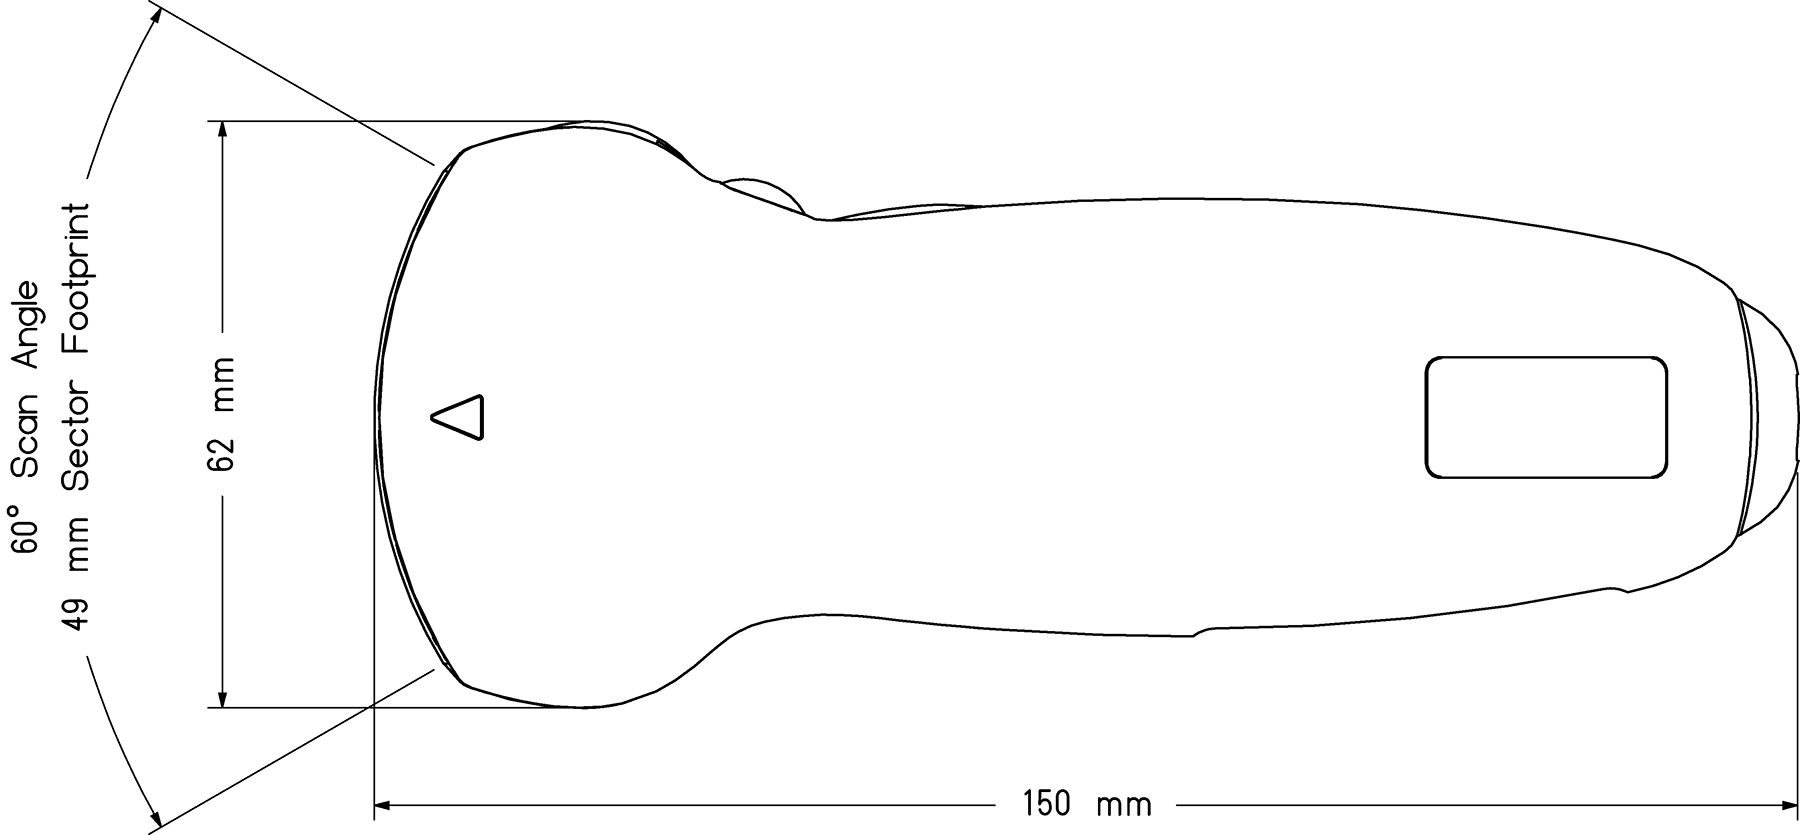 Point-of-Care USB Ultrasound Probe for General Purpose